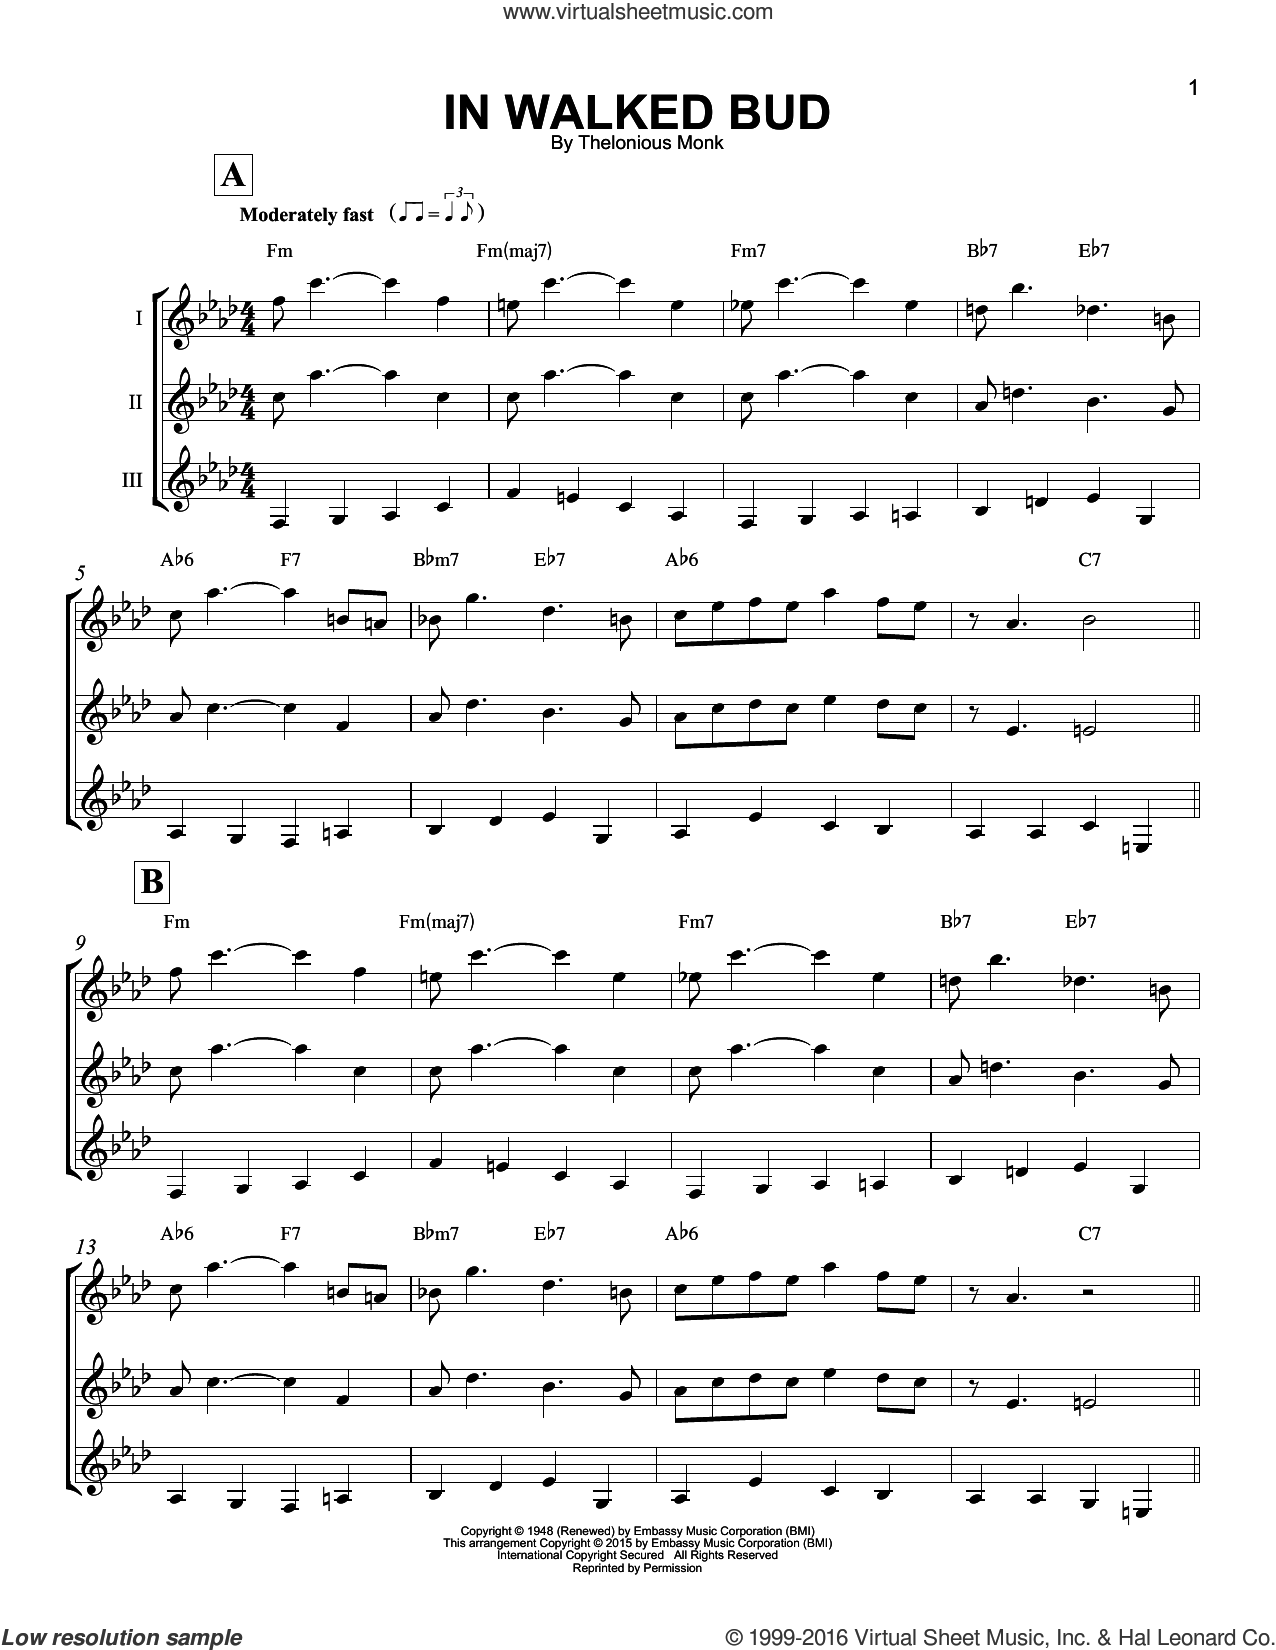 In Walked Bud sheet music for guitar ensemble by Thelonious Monk. Score Image Preview.